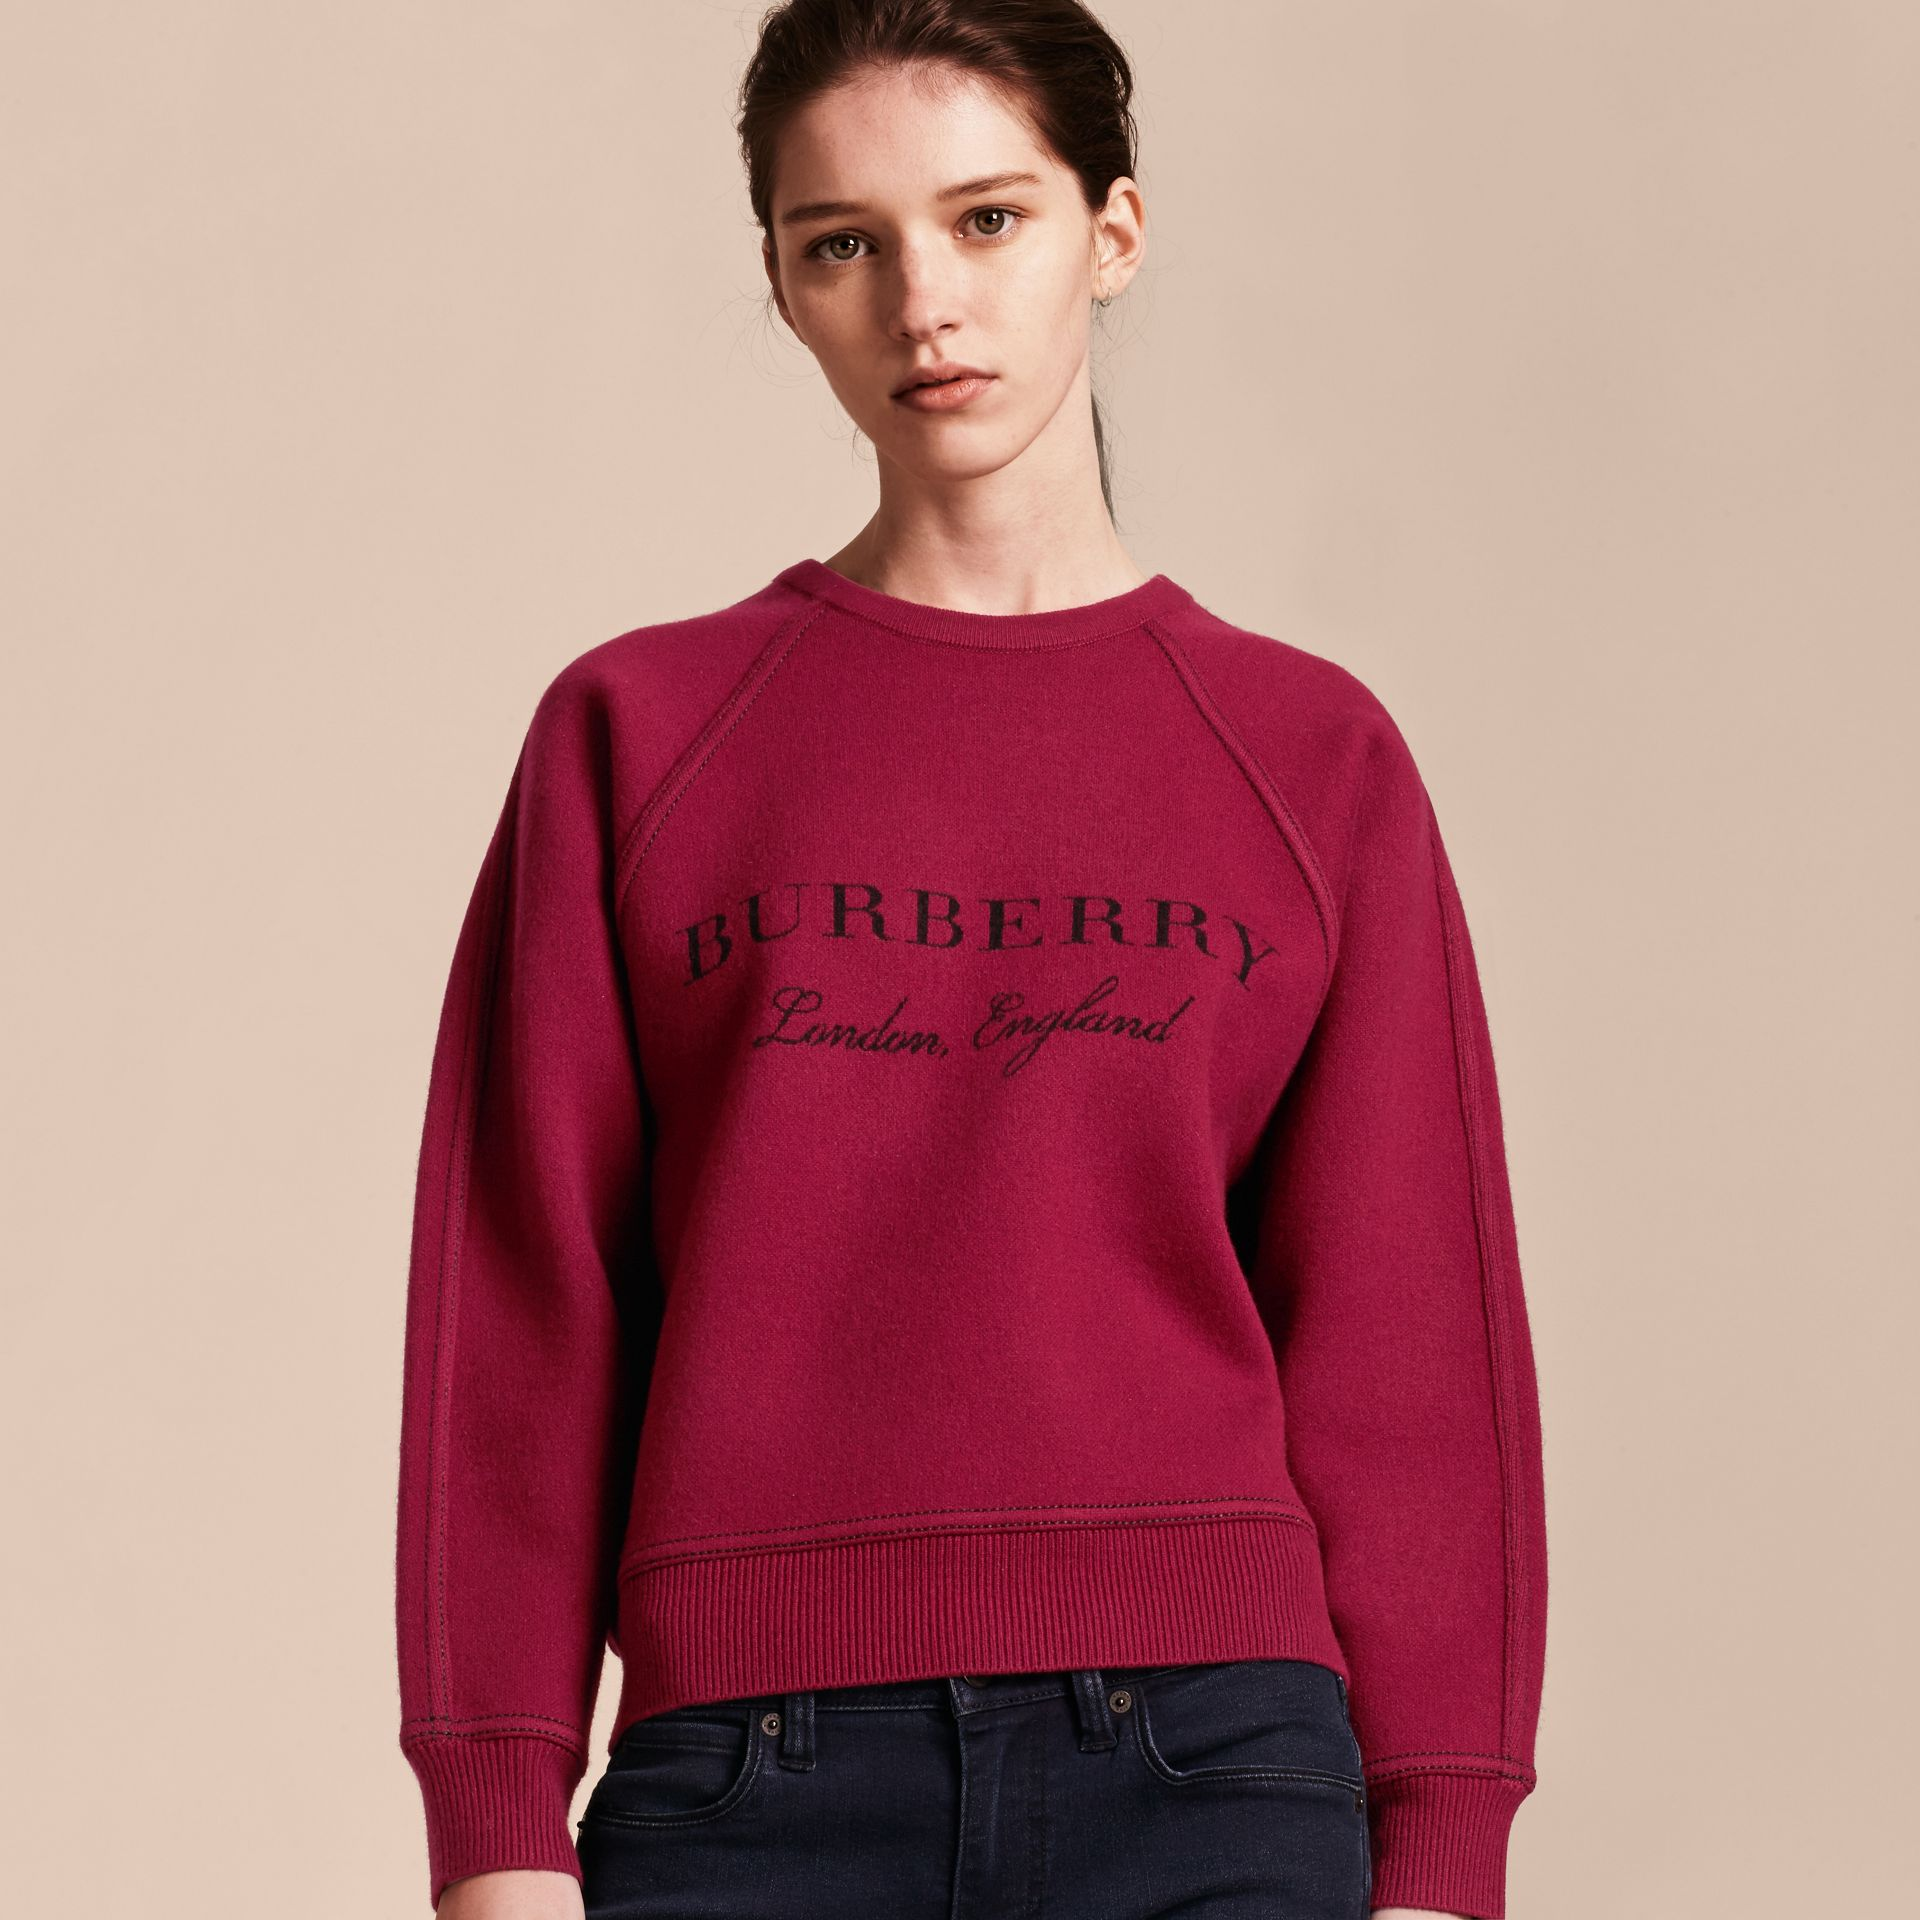 Topstitch Detail Wool Cashmere Blend Sweater in Burgundy - Women | Burberry - gallery image 6